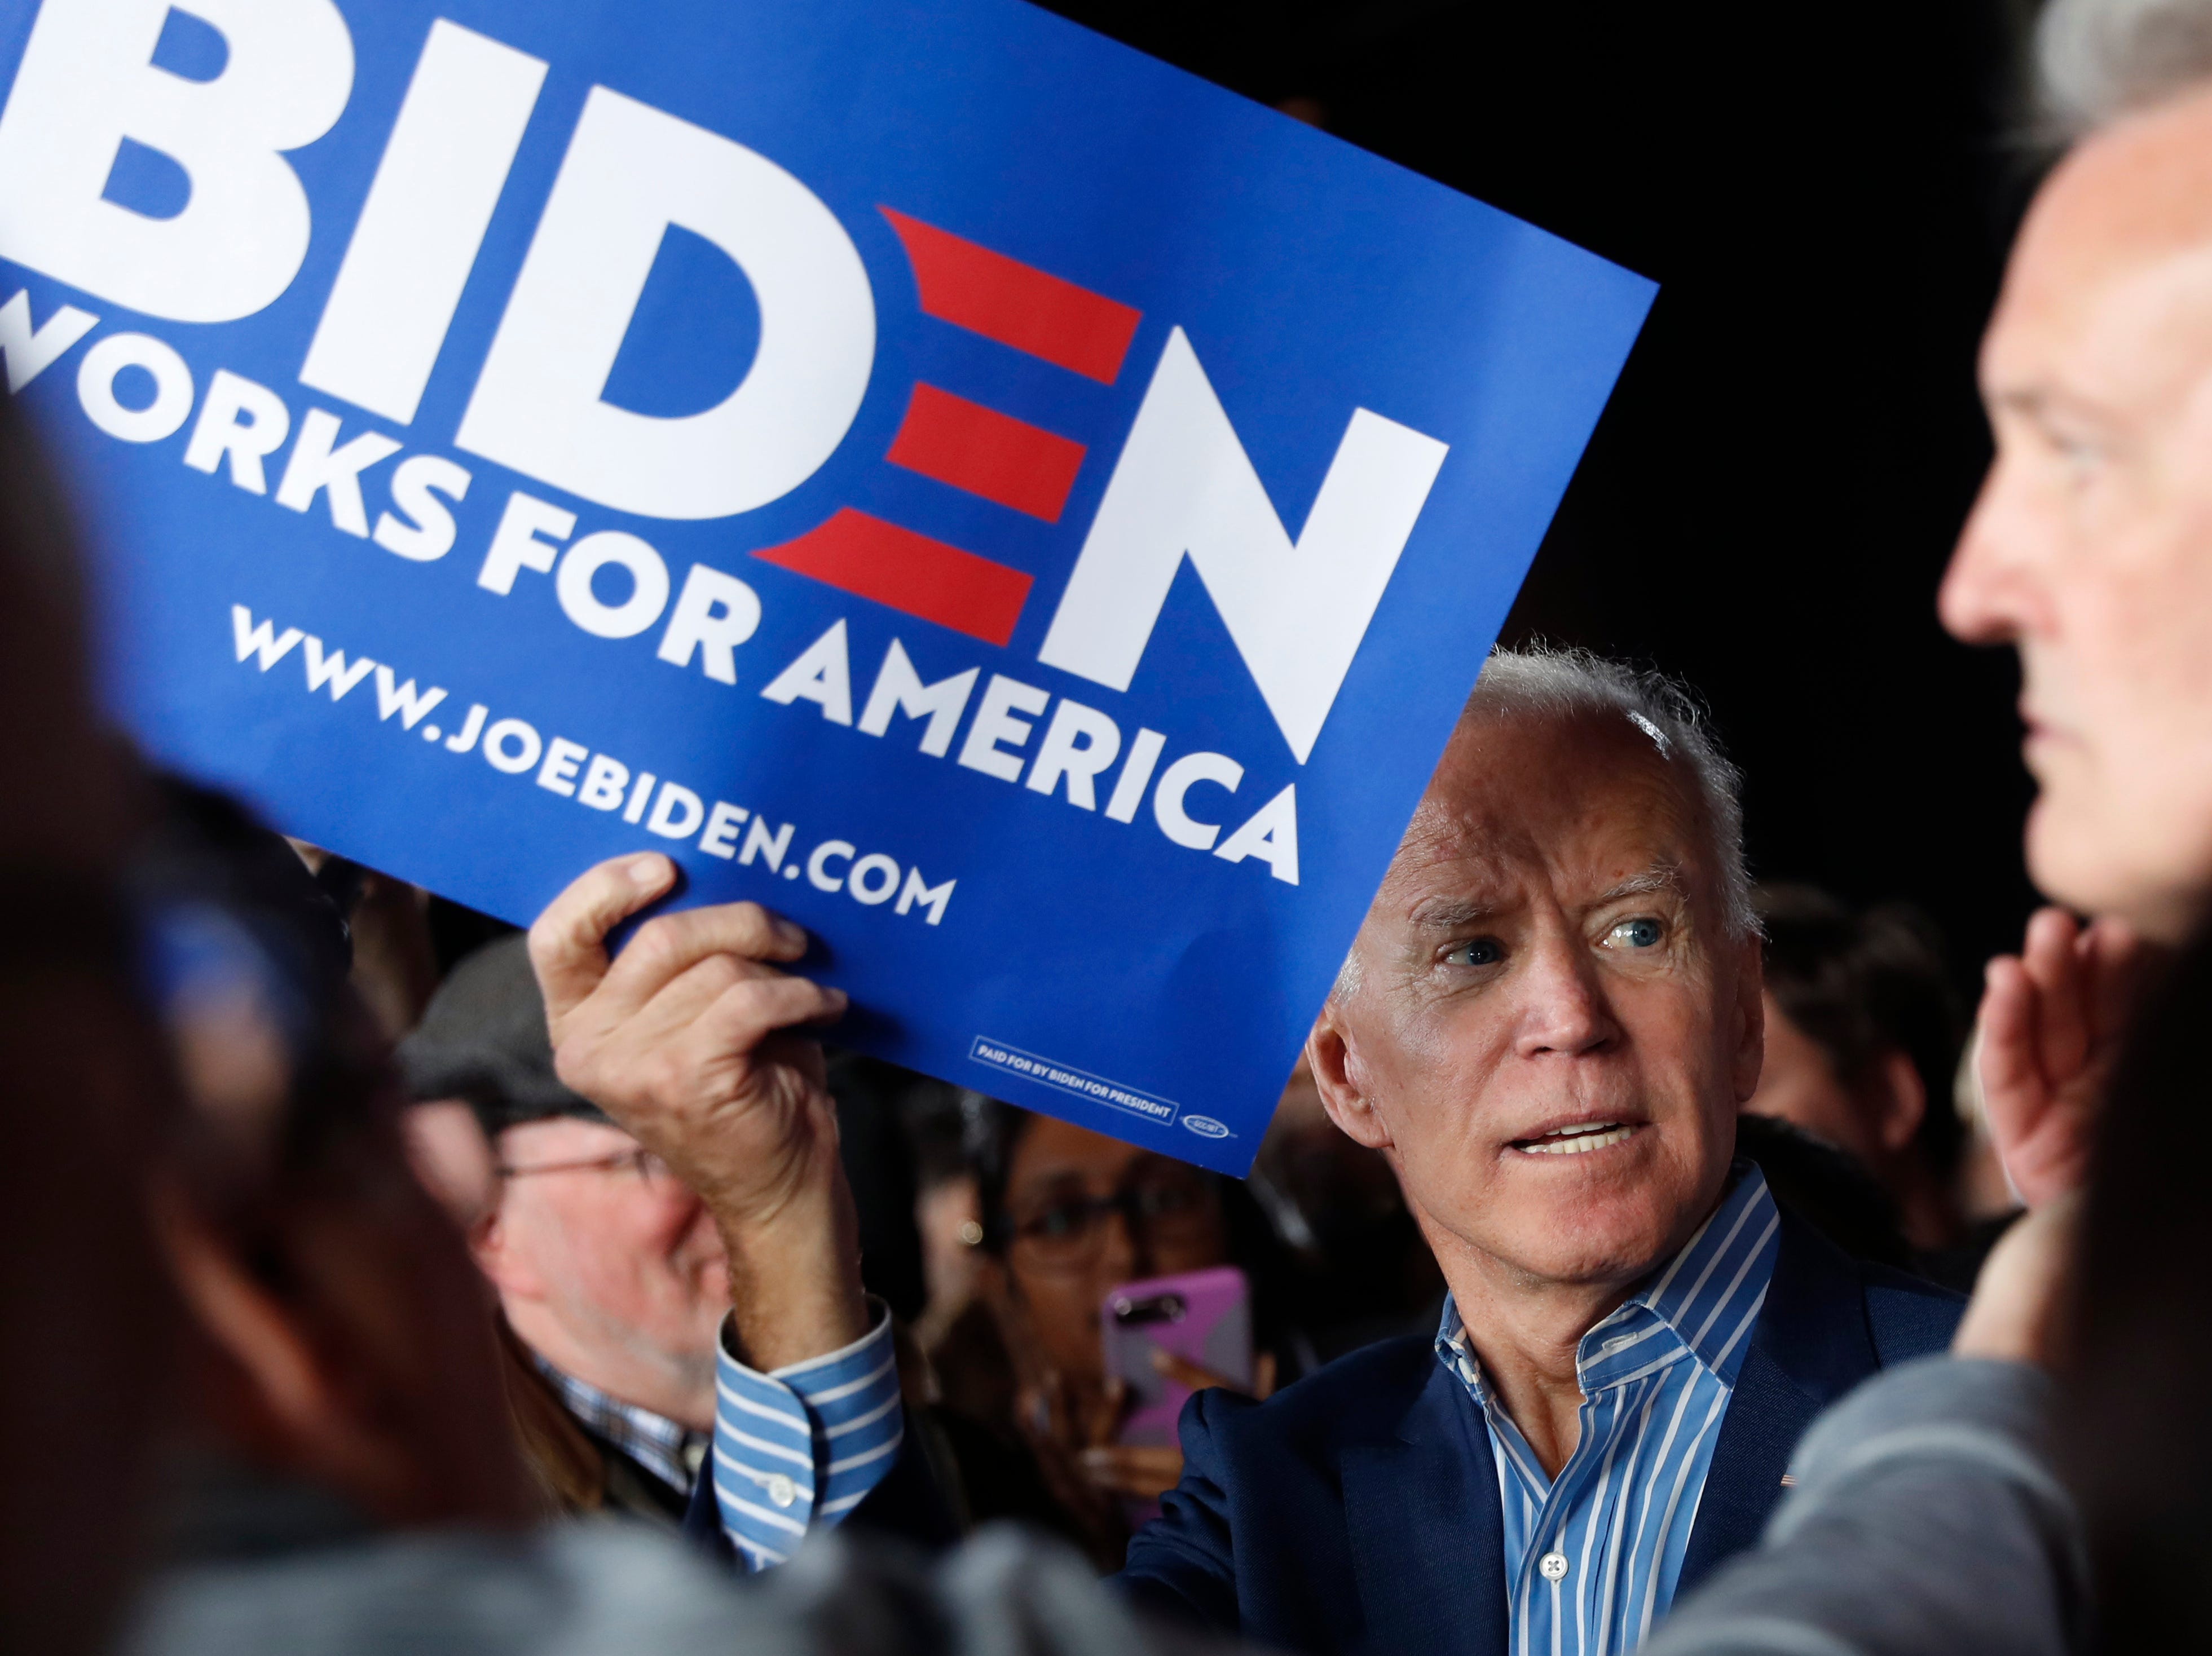 Former Vice President and Democratic presidential candidate Joe Biden holds a sign to be autographed during a rally, Wednesday, May 1, 2019, in Iowa City, Iowa.